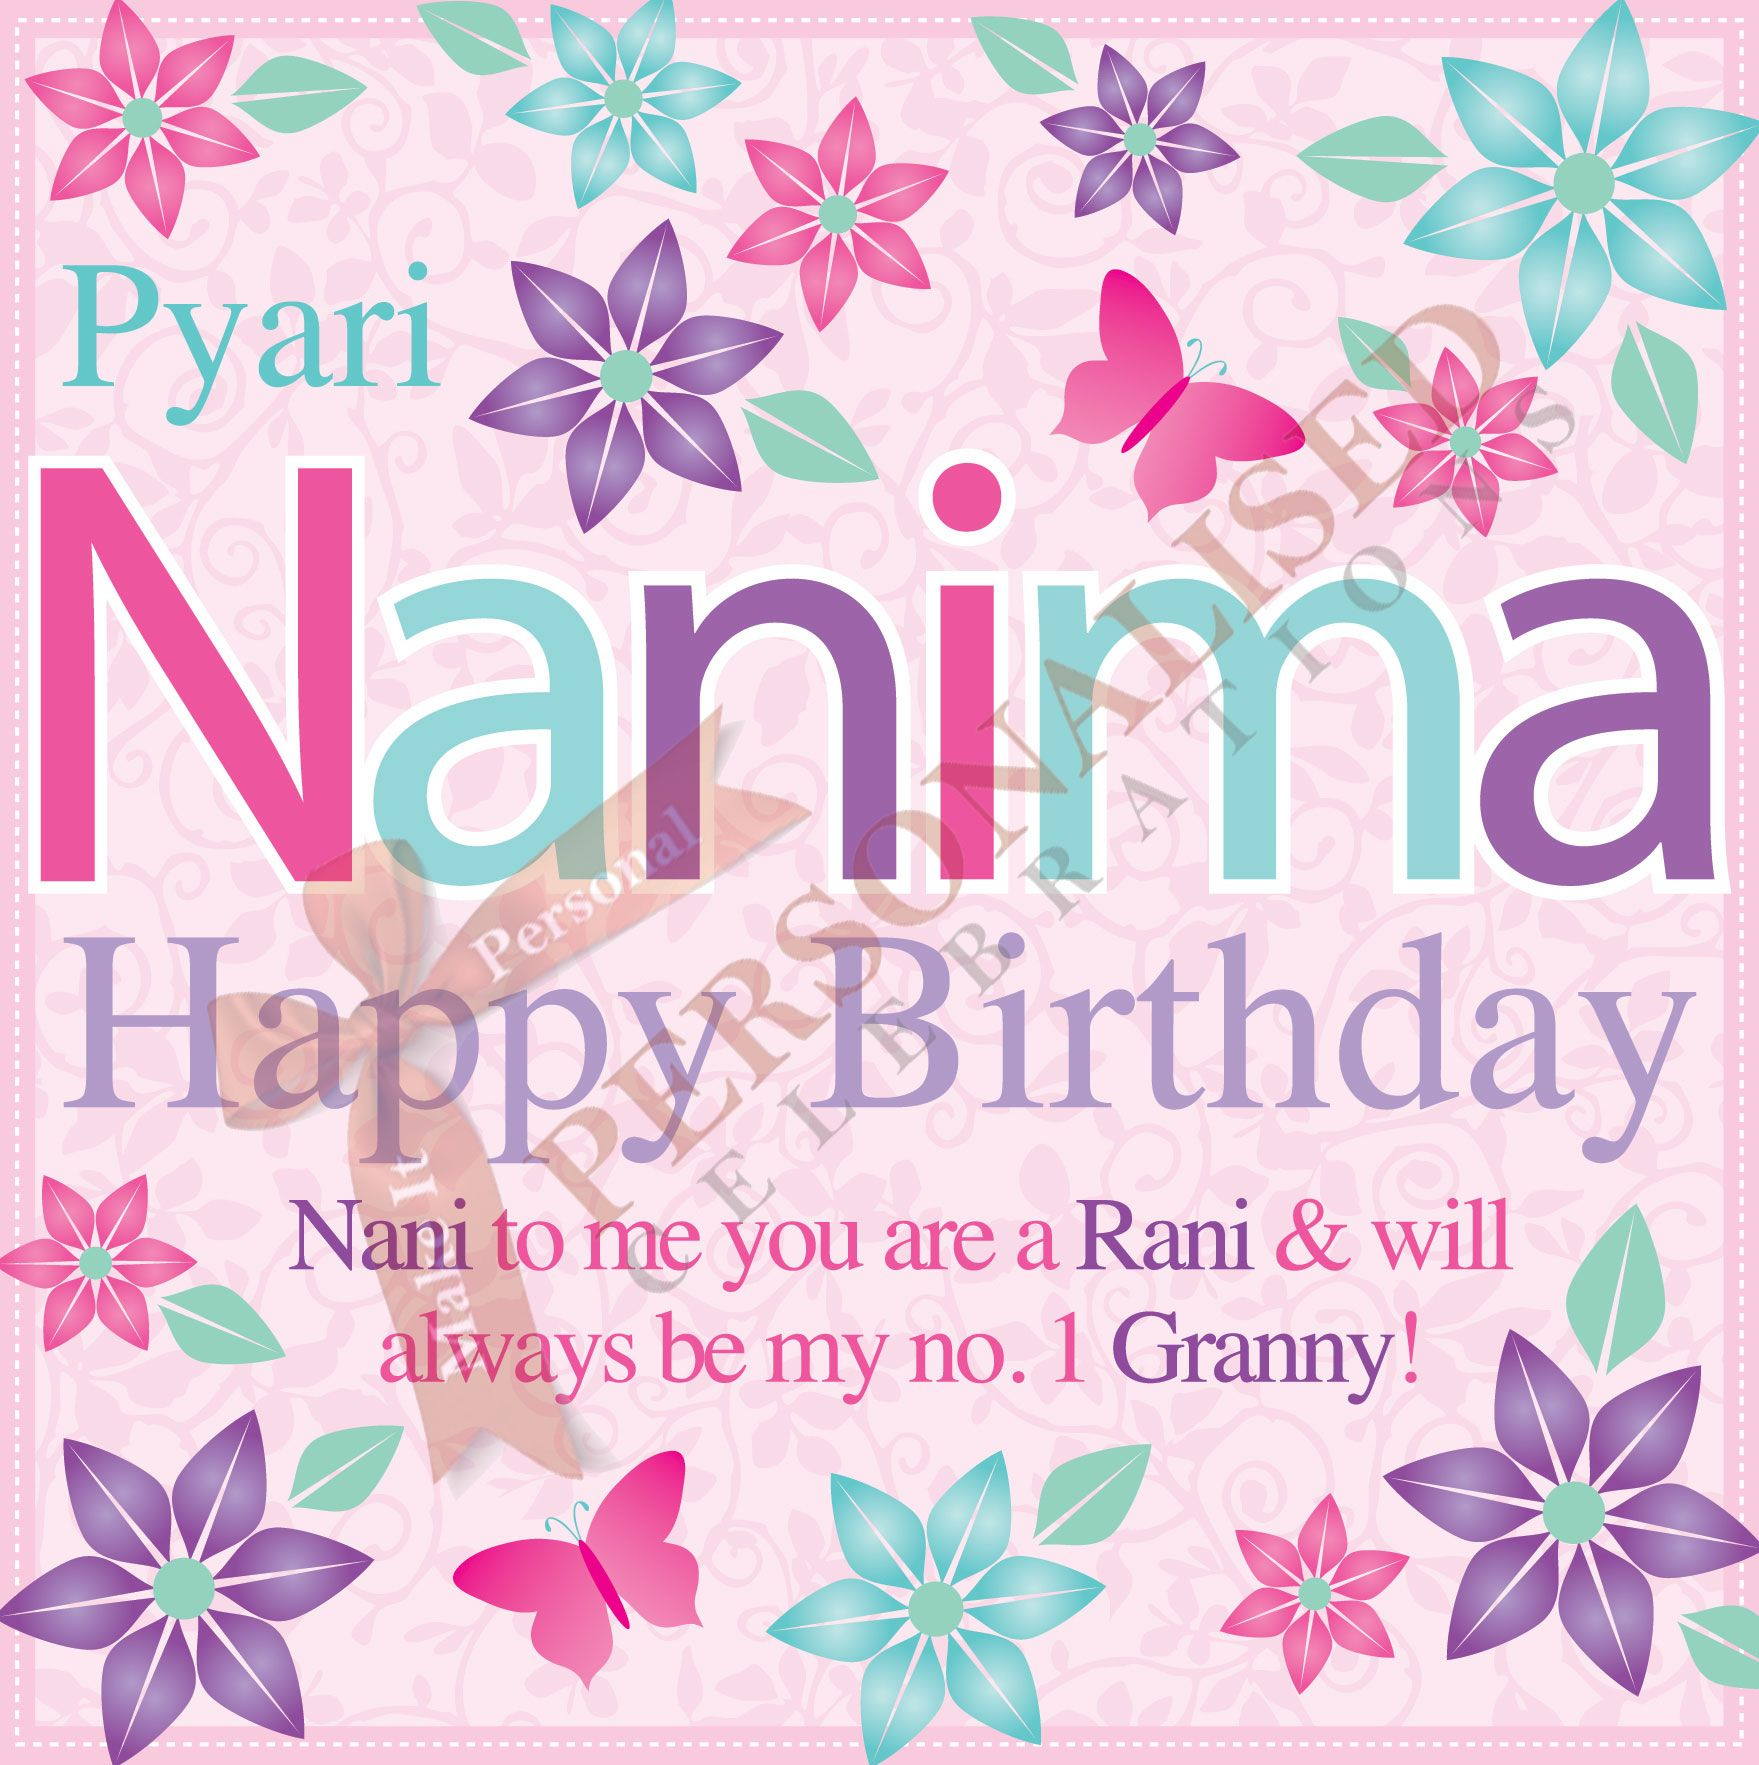 Nanima Birthday Card Buy this card online only 199 at http – Birthday Card Buy Online